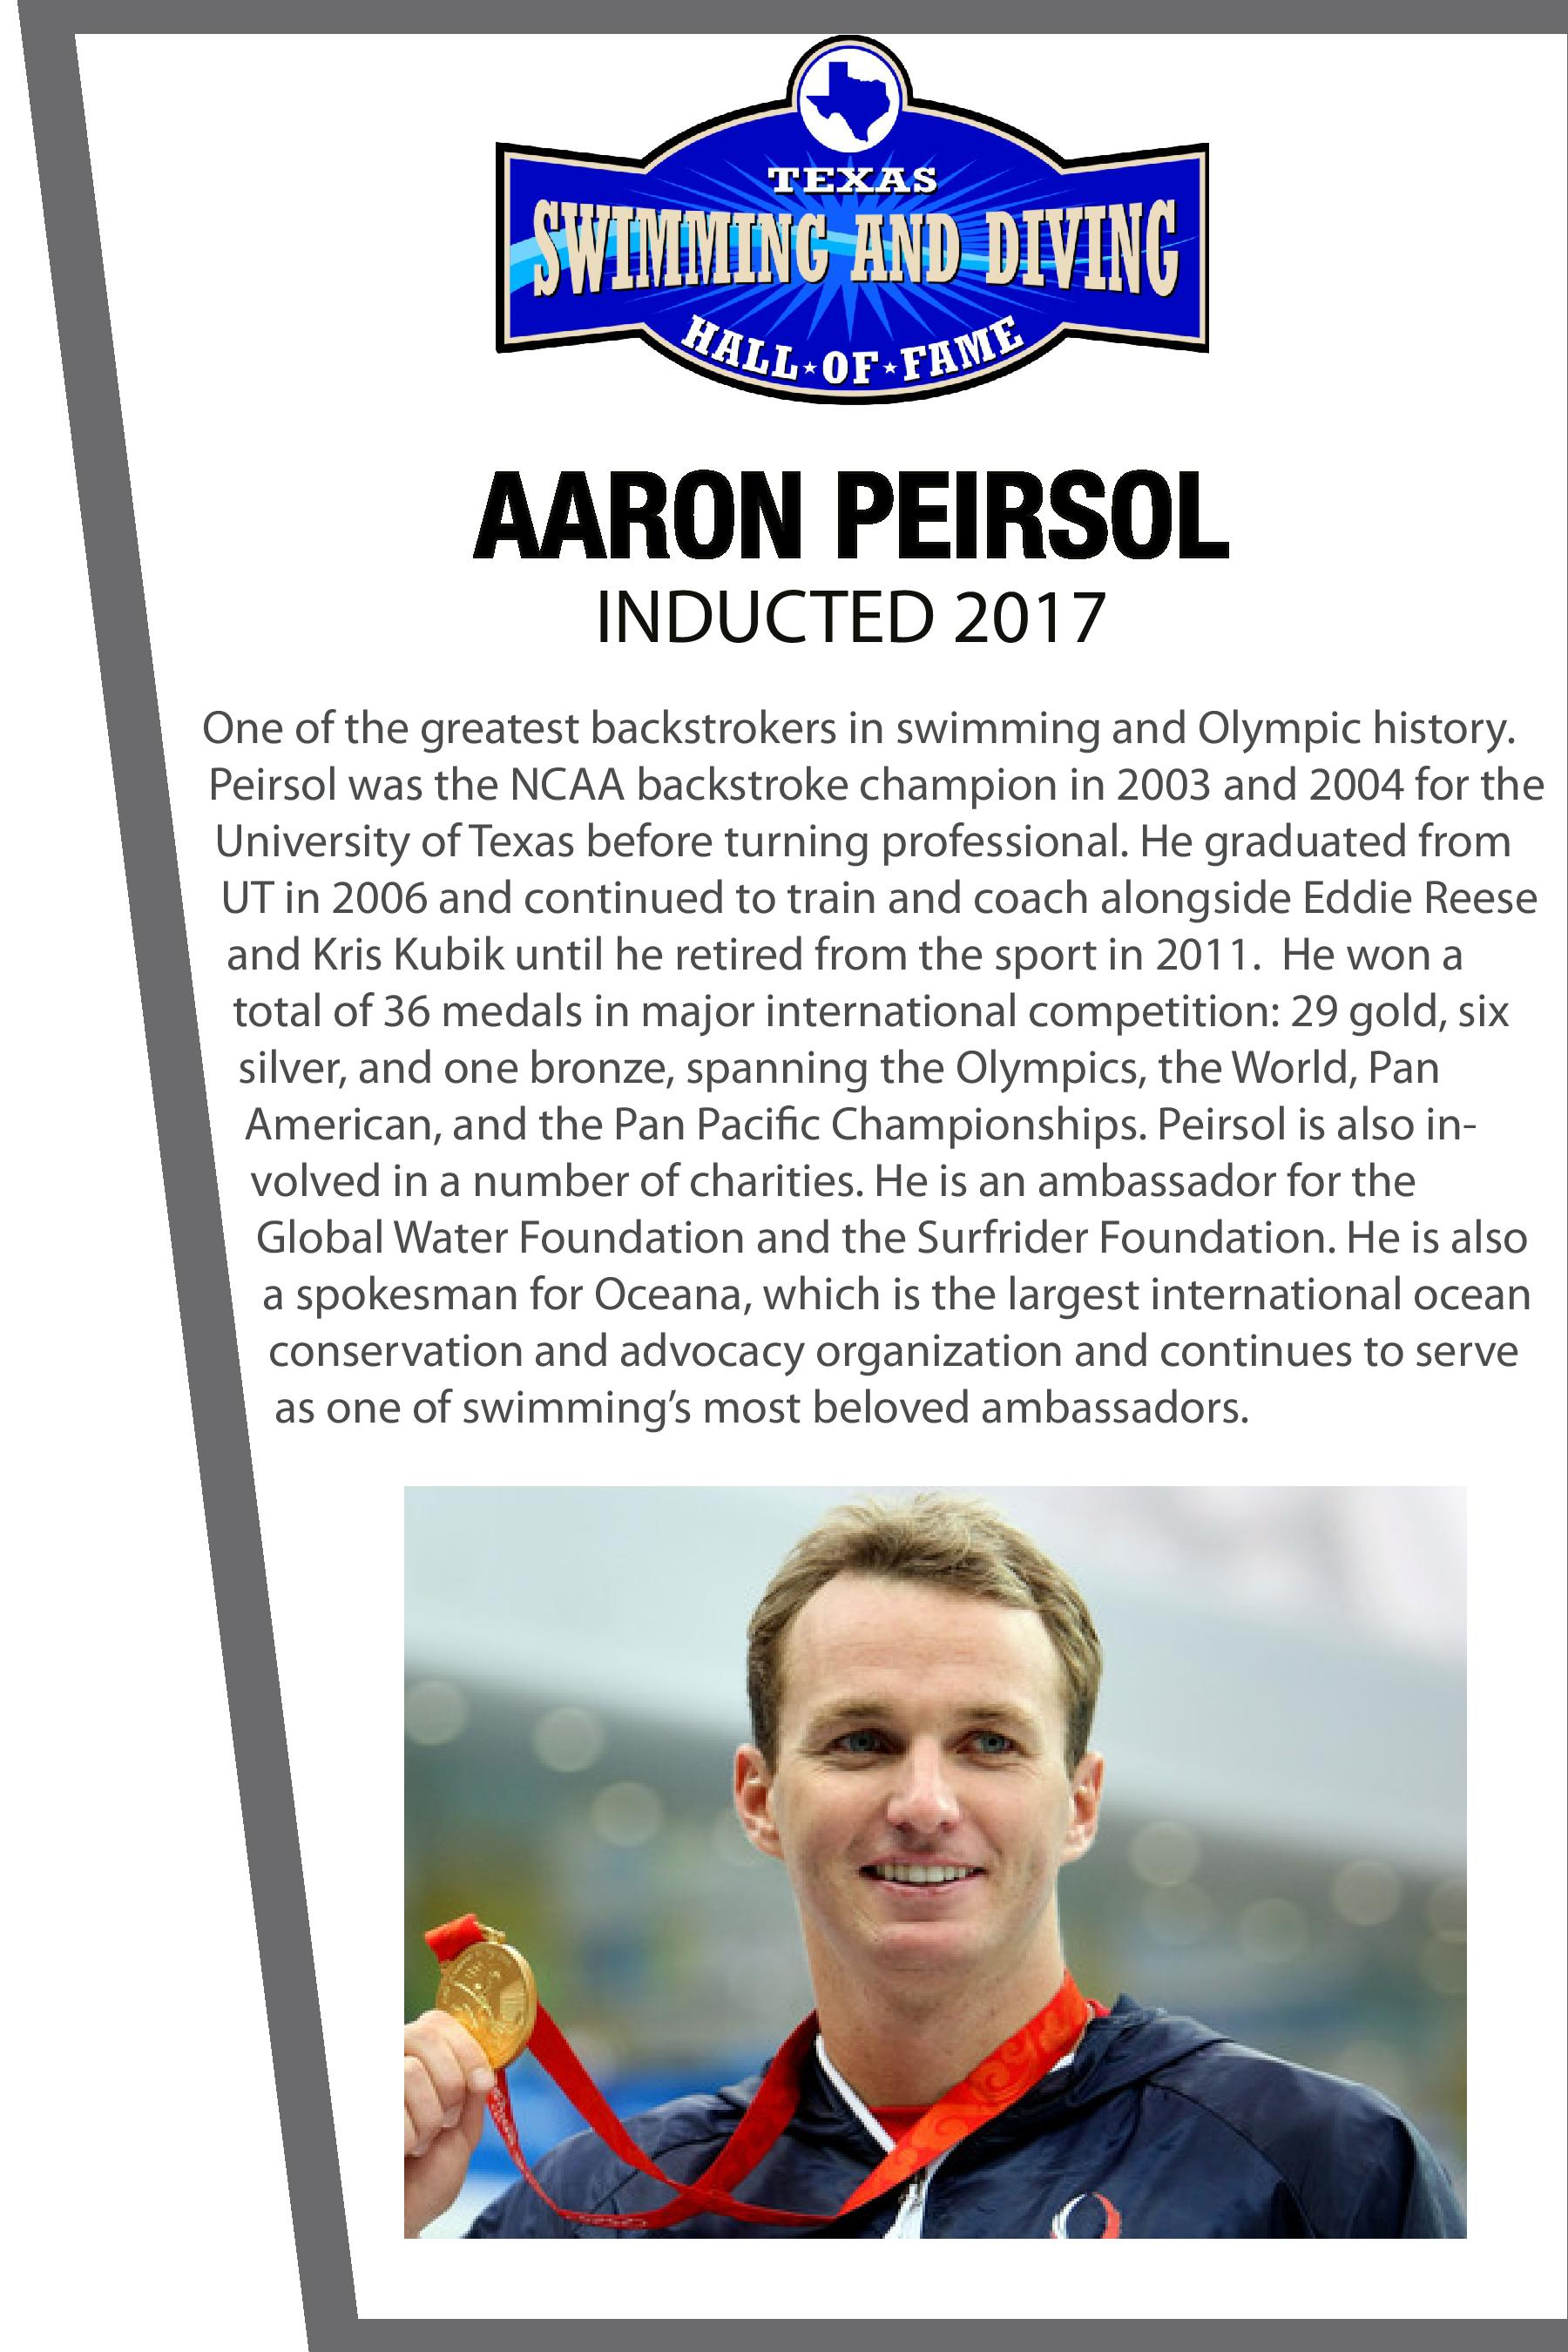 AARON PEIRSOL-page-001.jpg